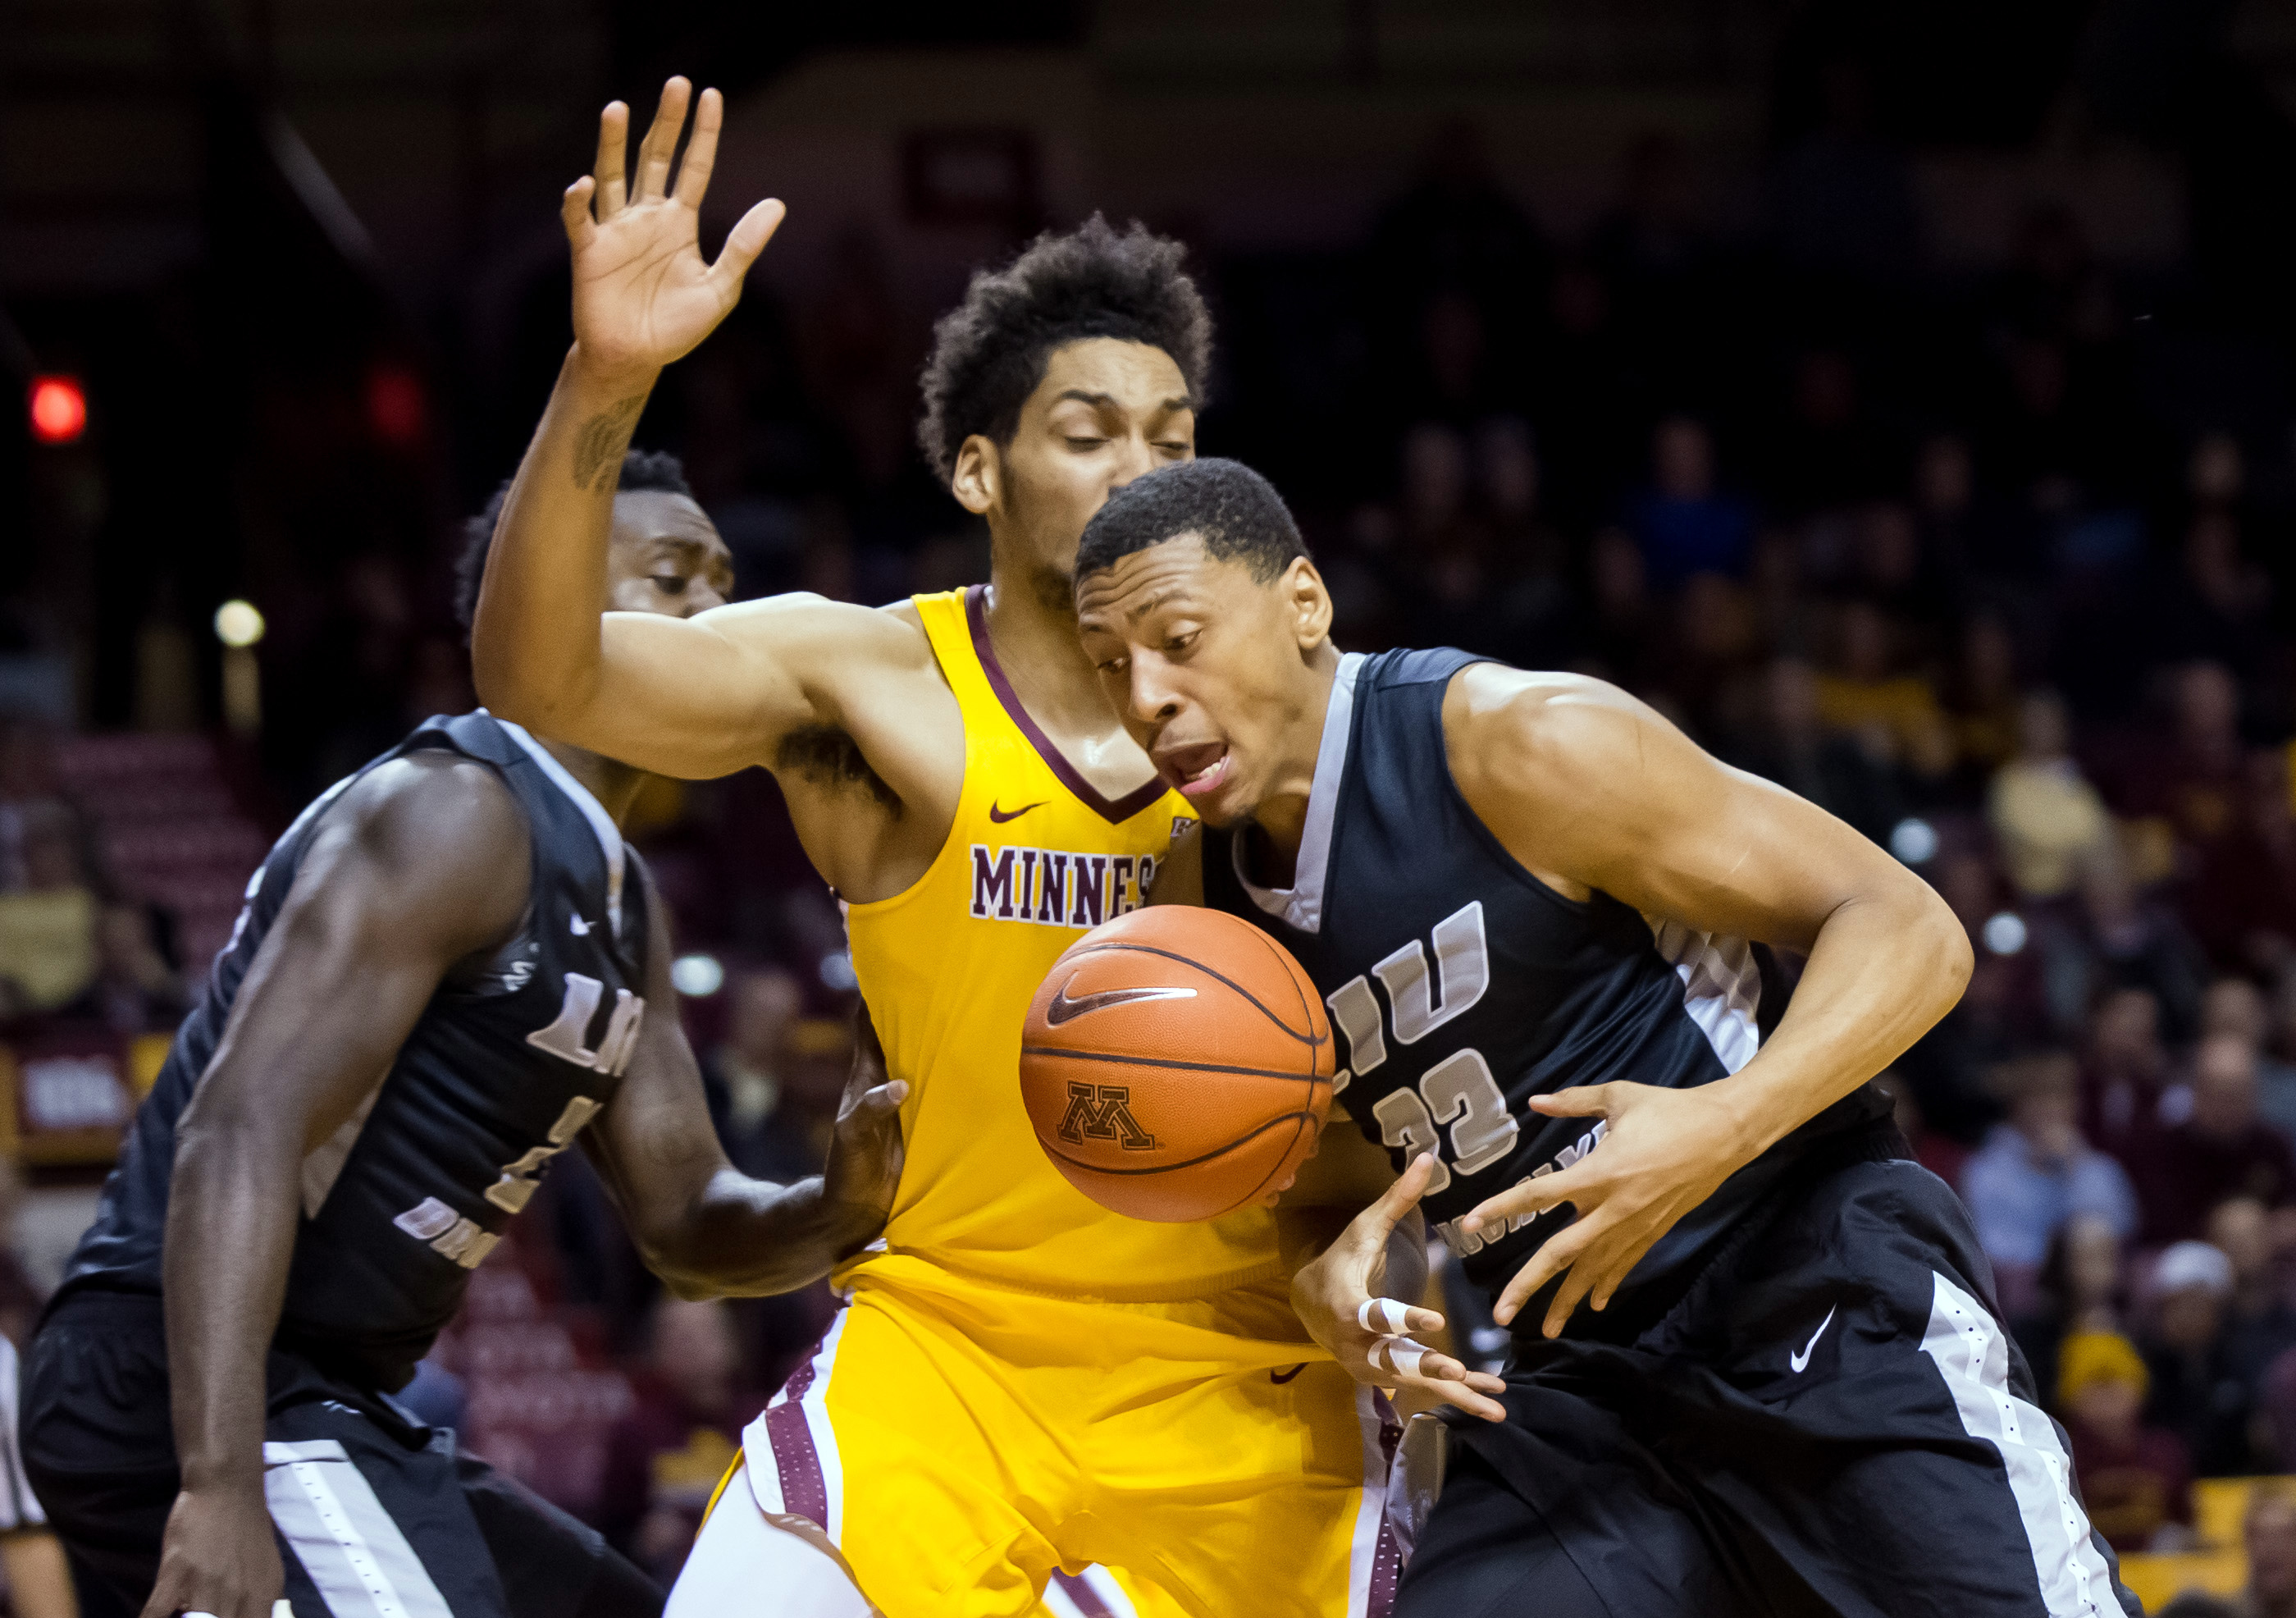 NCAA Basketball: LIU Brooklyn at Minnesota